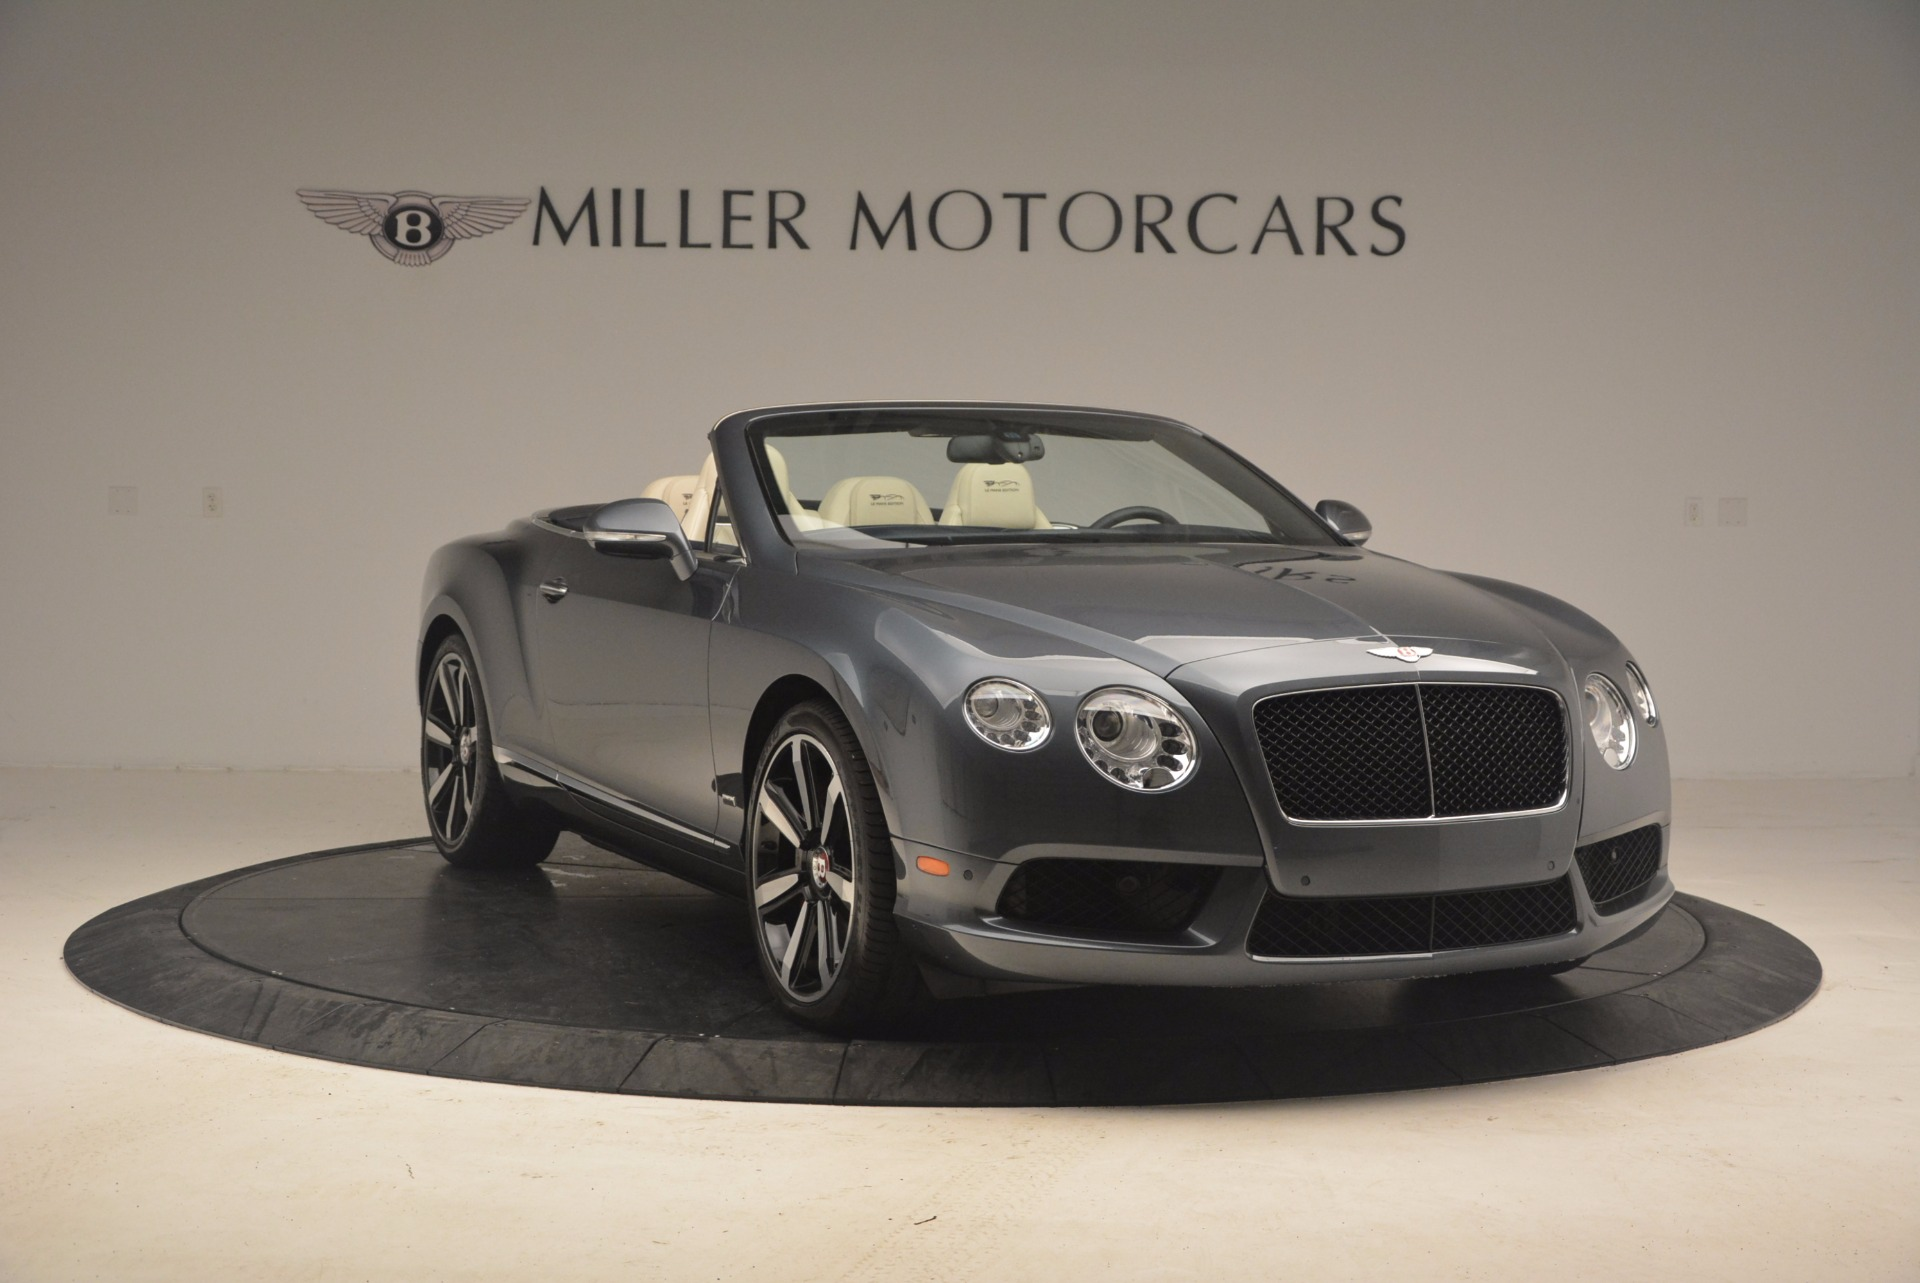 Used 2013 Bentley Continental GT V8 Le Mans Edition, 1 of 48 For Sale In Greenwich, CT. Alfa Romeo of Greenwich, 7226 1288_p11